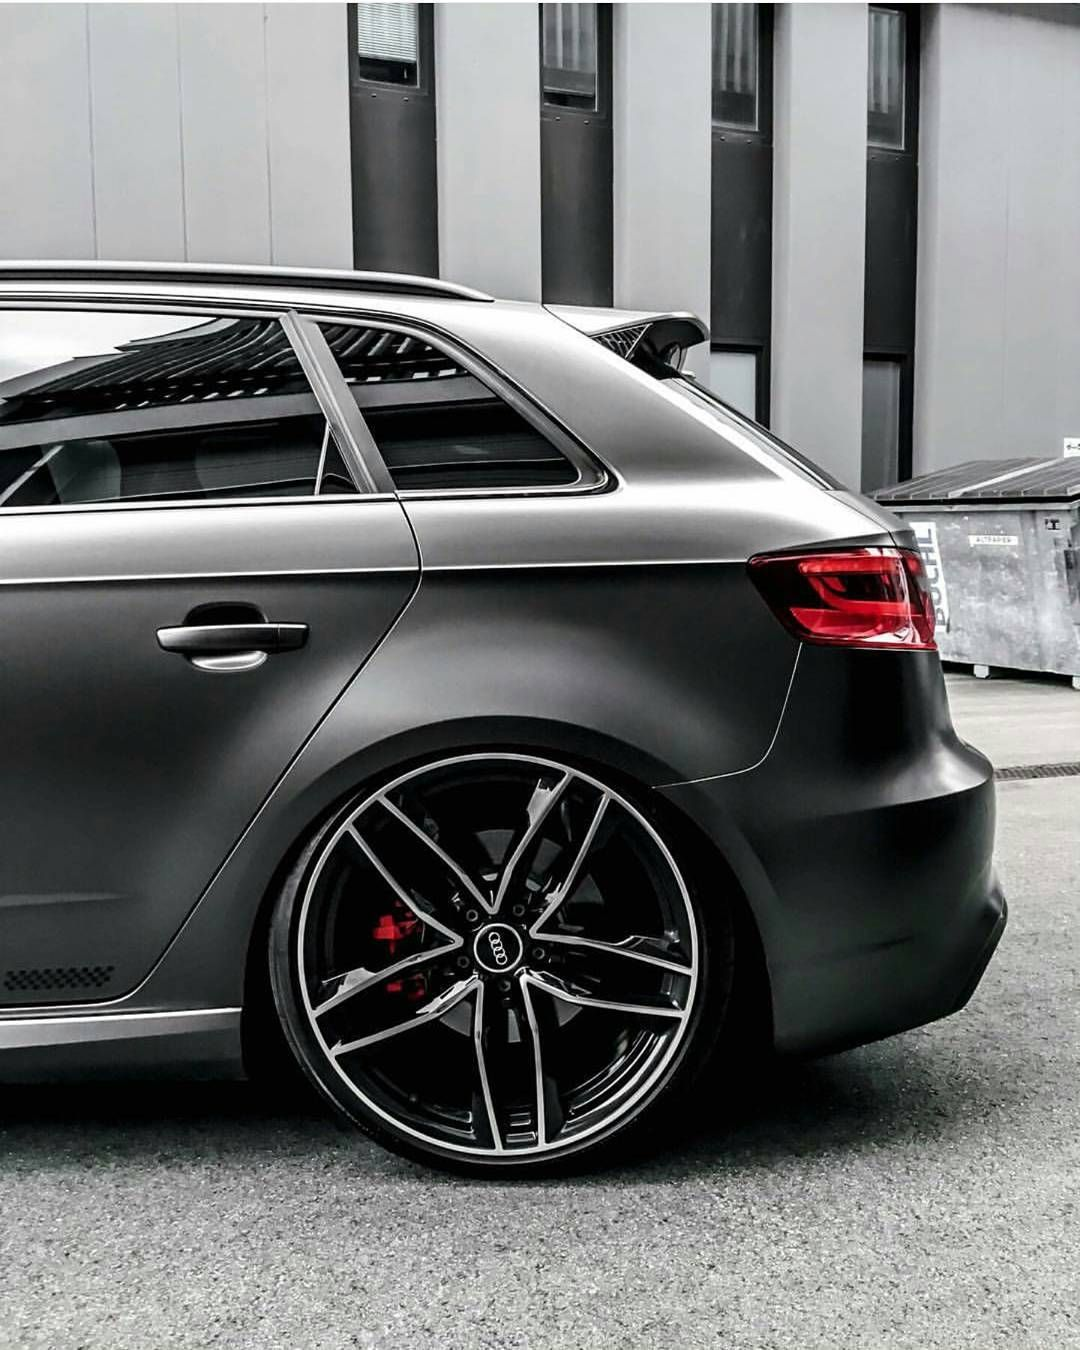 22 9k likes 57 comments audi fan page audi_official on instagram